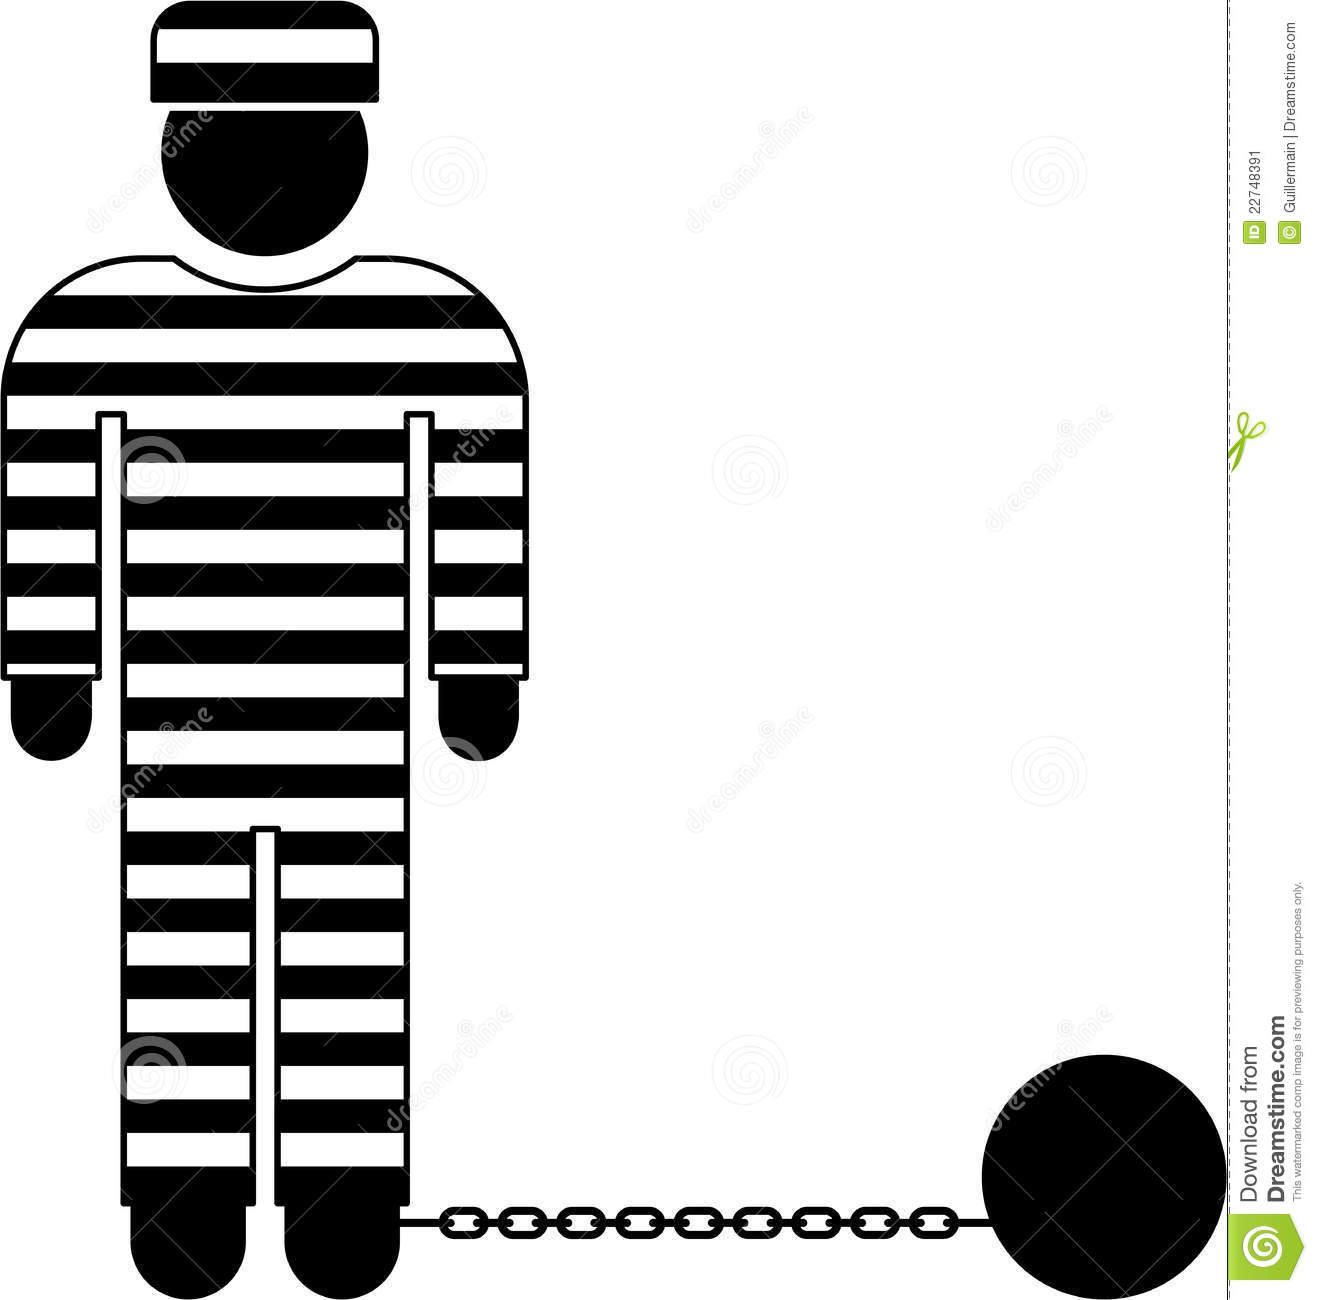 Inmate clipart png freeuse library Inmate Clip Art | Clipart Panda - Free Clipart Images png freeuse library